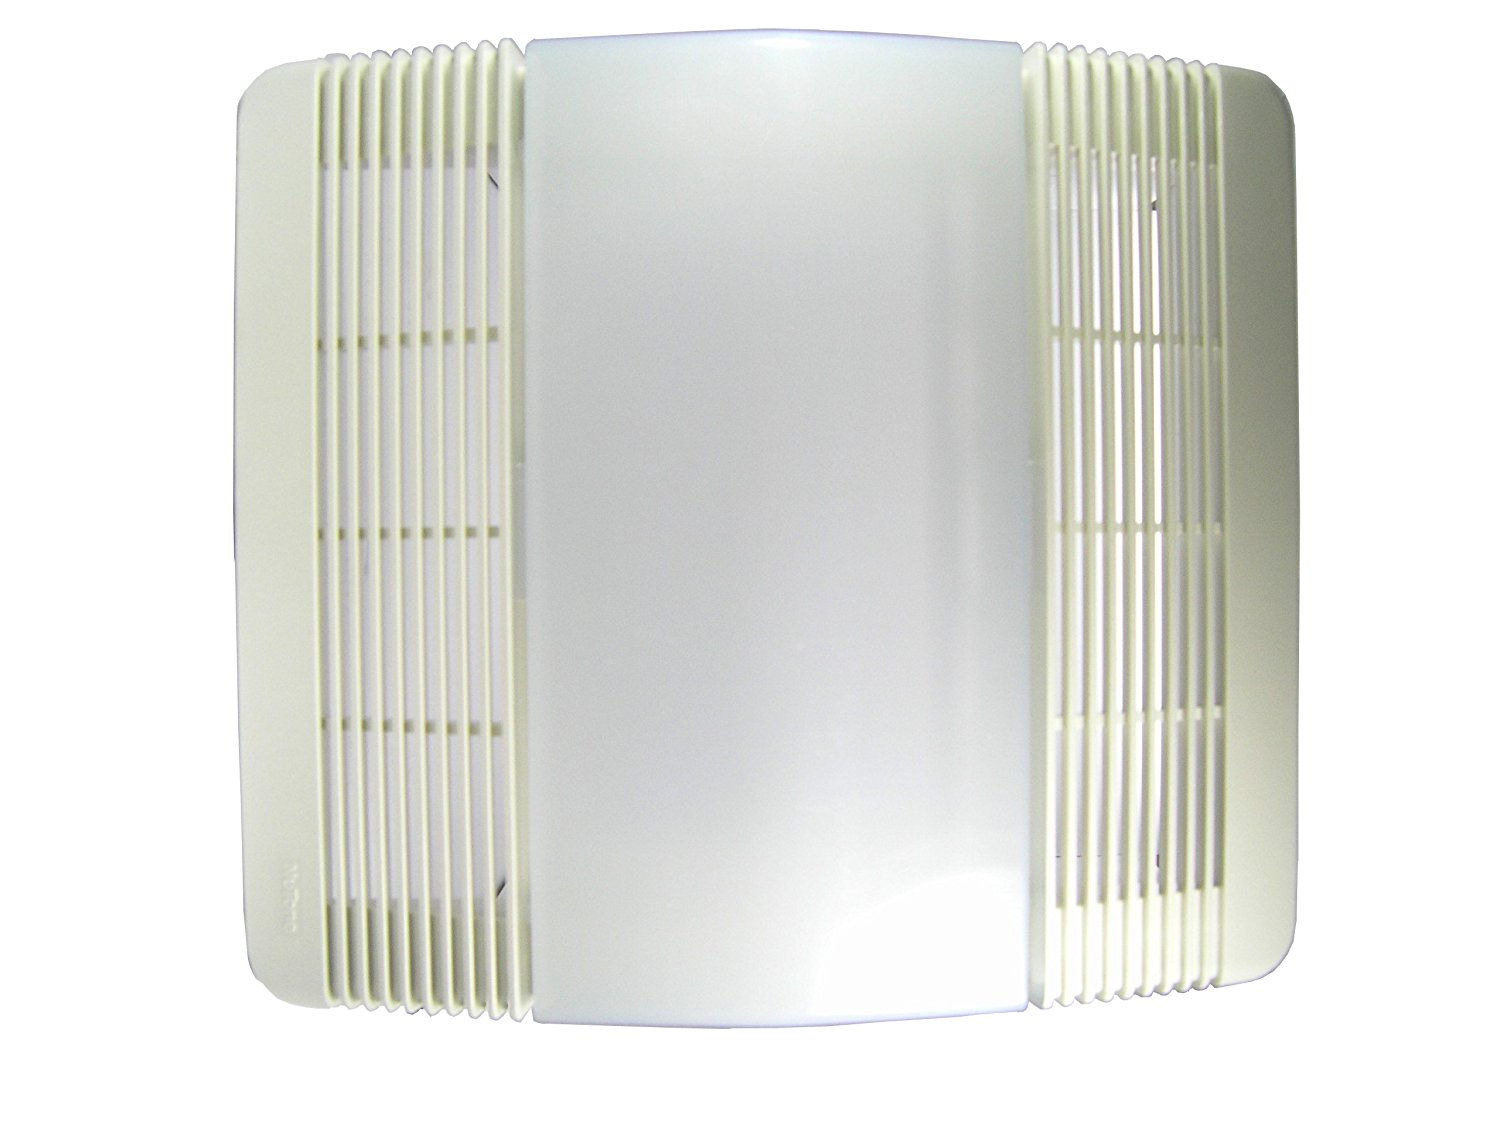 85315000 heater and ventilation fan lens with grille assembly includes the lens and grille this grille does not attach with springs by nutone